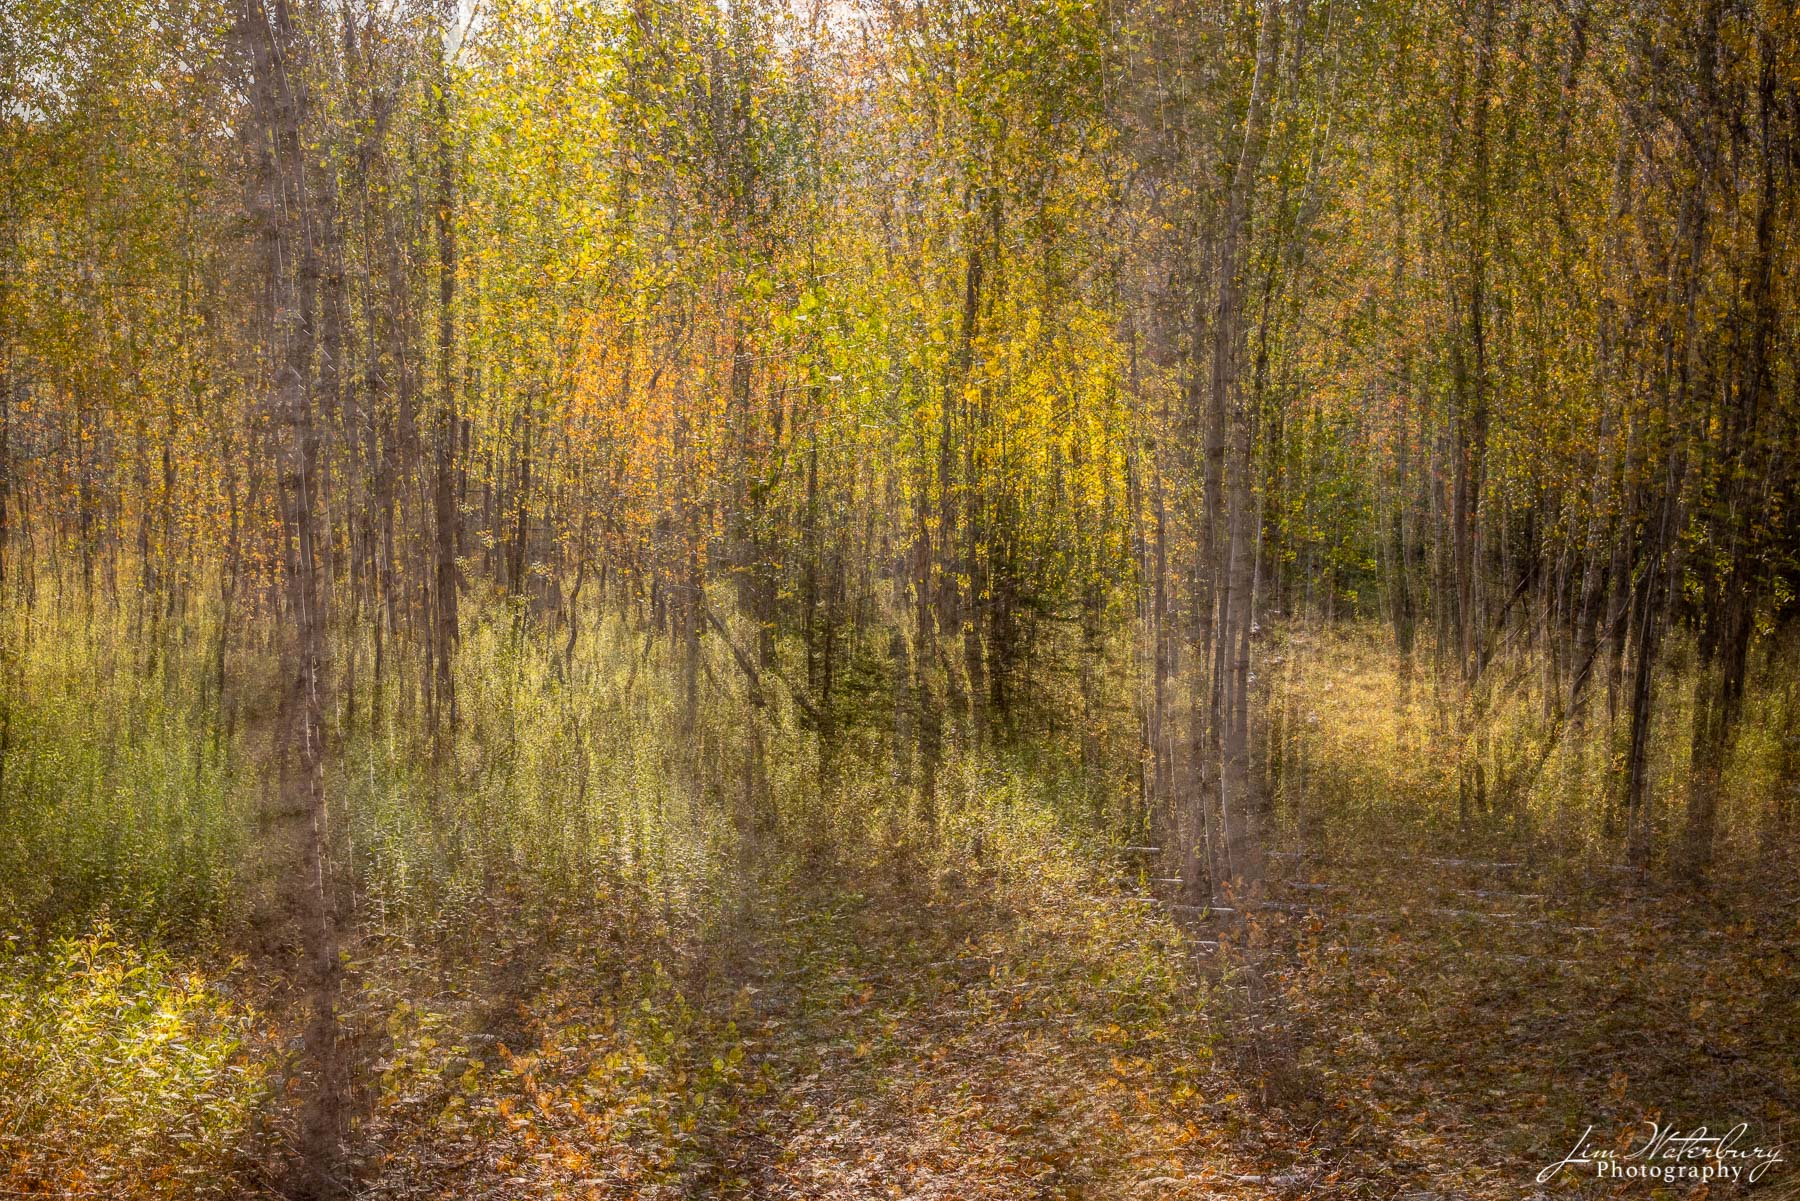 Abstract of trees in the forest, with early morning light highlighting the yellows, greens, and oranges of fall.